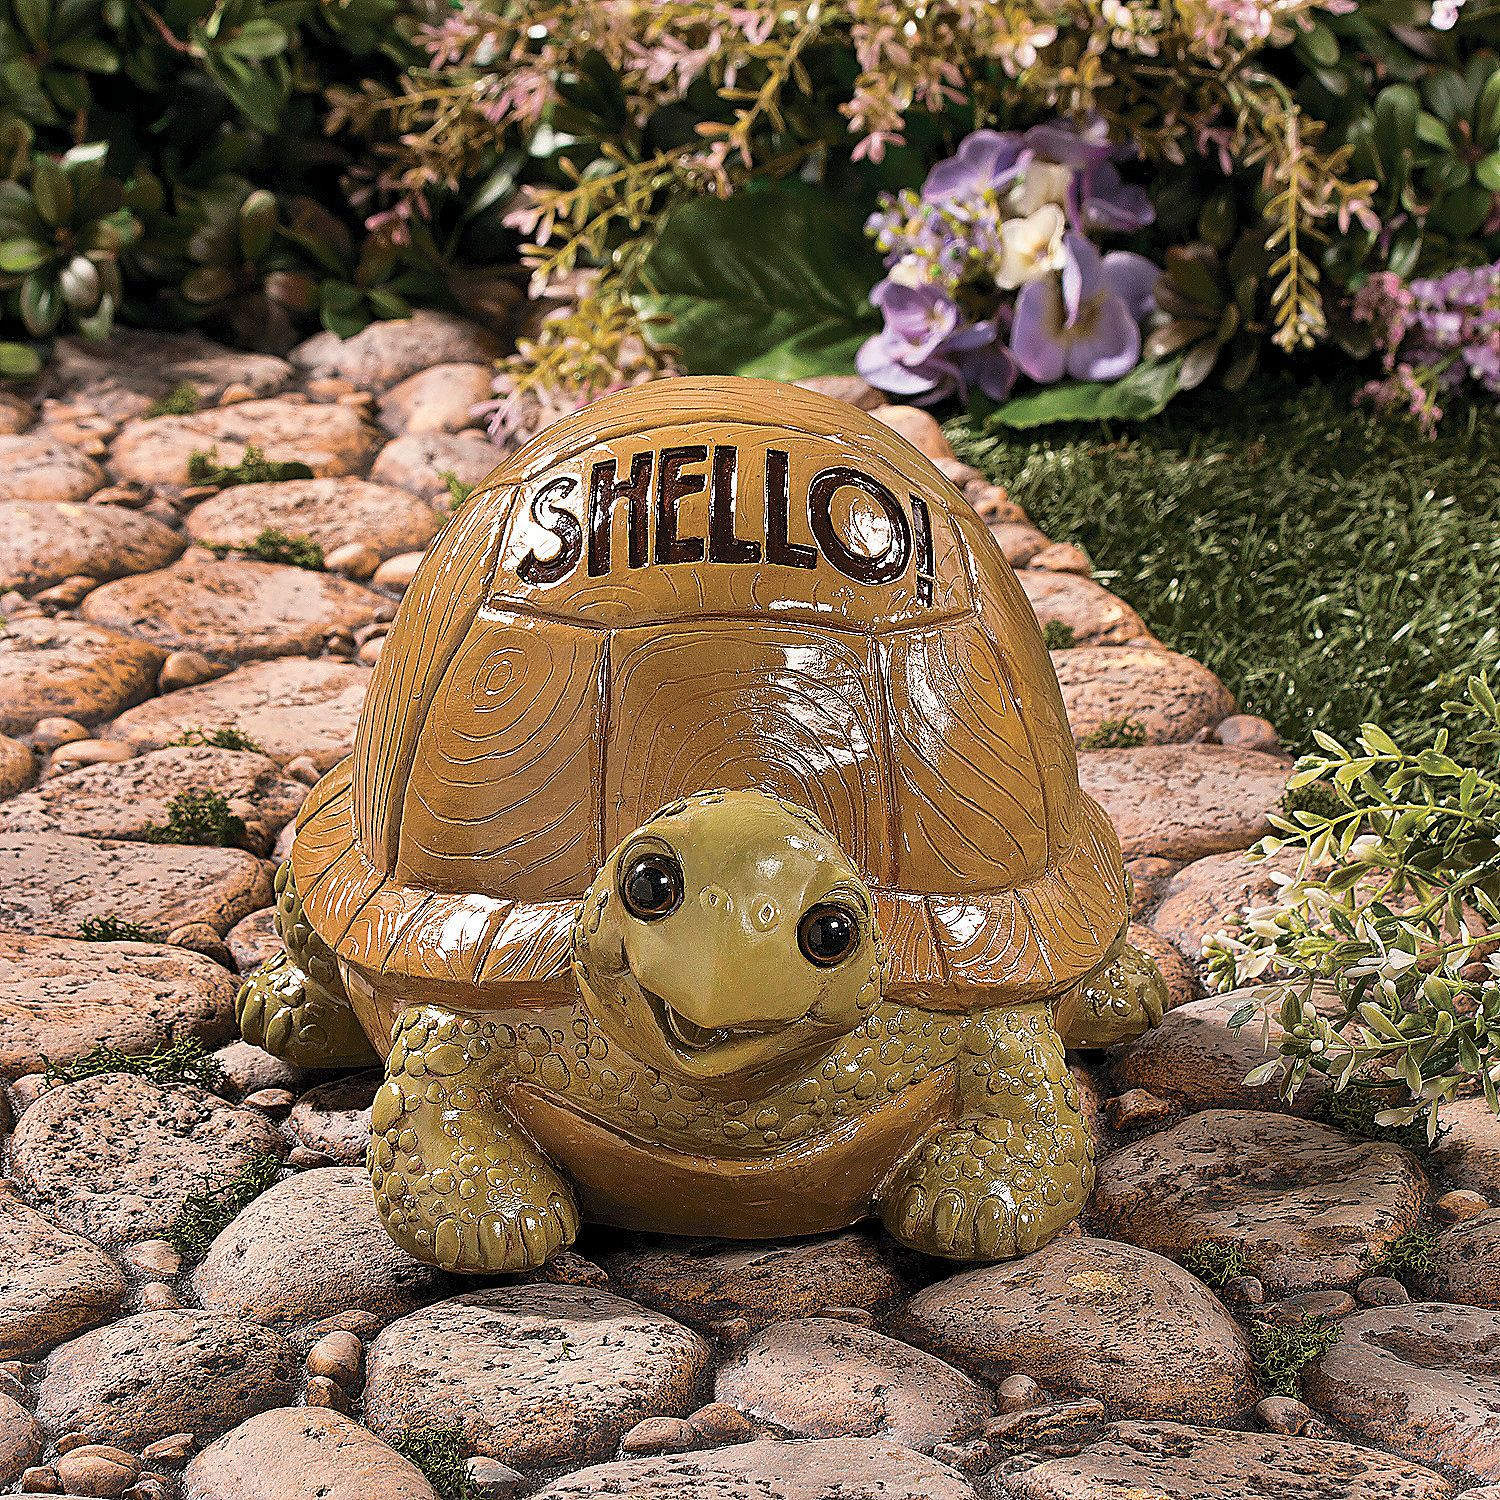 decoration room ninja bedroom home for turtles super design teenage decorations decor wall creative turtle pictures exterior ideas mutant